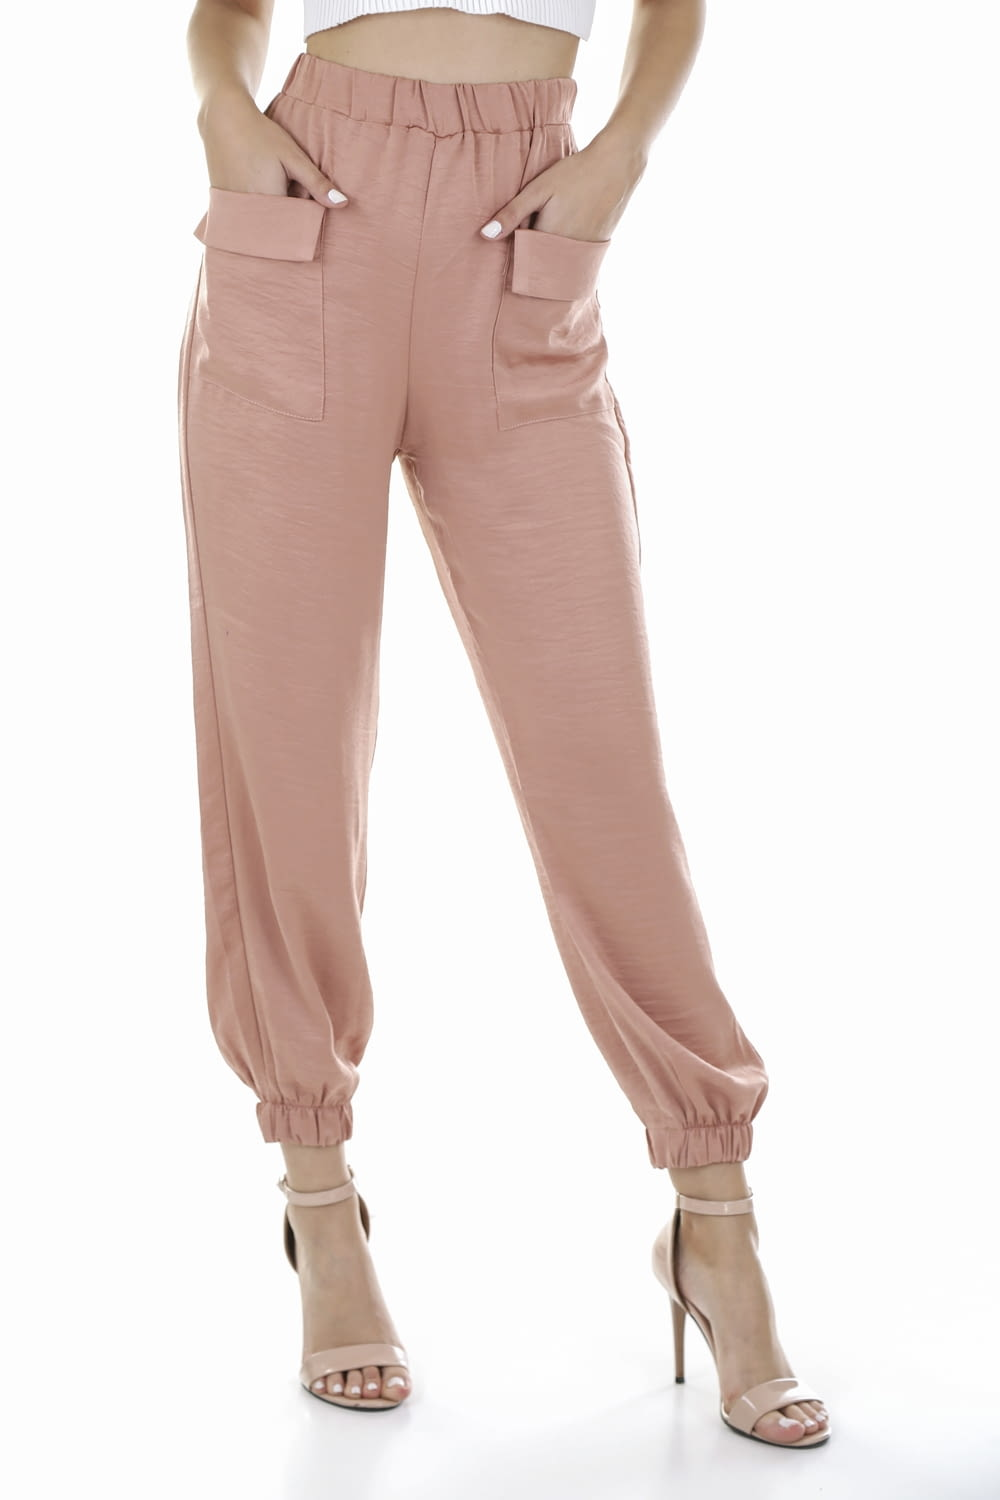 person in pink pants and white shoes